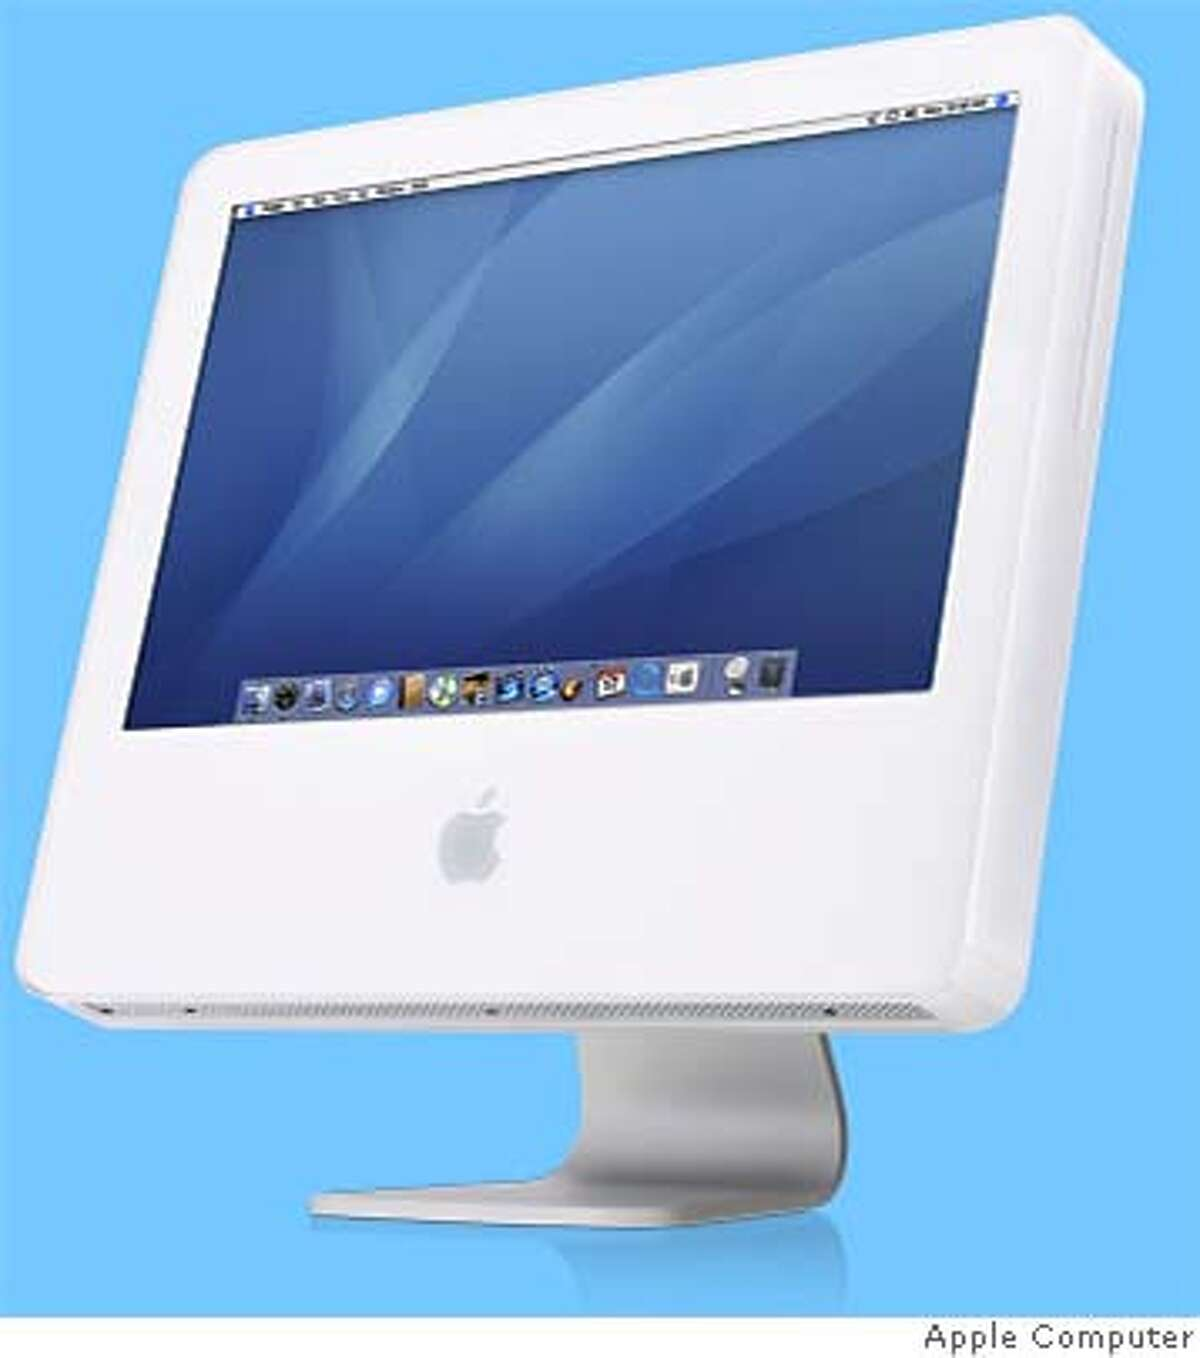 Apple has been using IBM-designed PowerPC chips in all its Macintosh computers for more than a decade. Apple Computer Image via apple.com